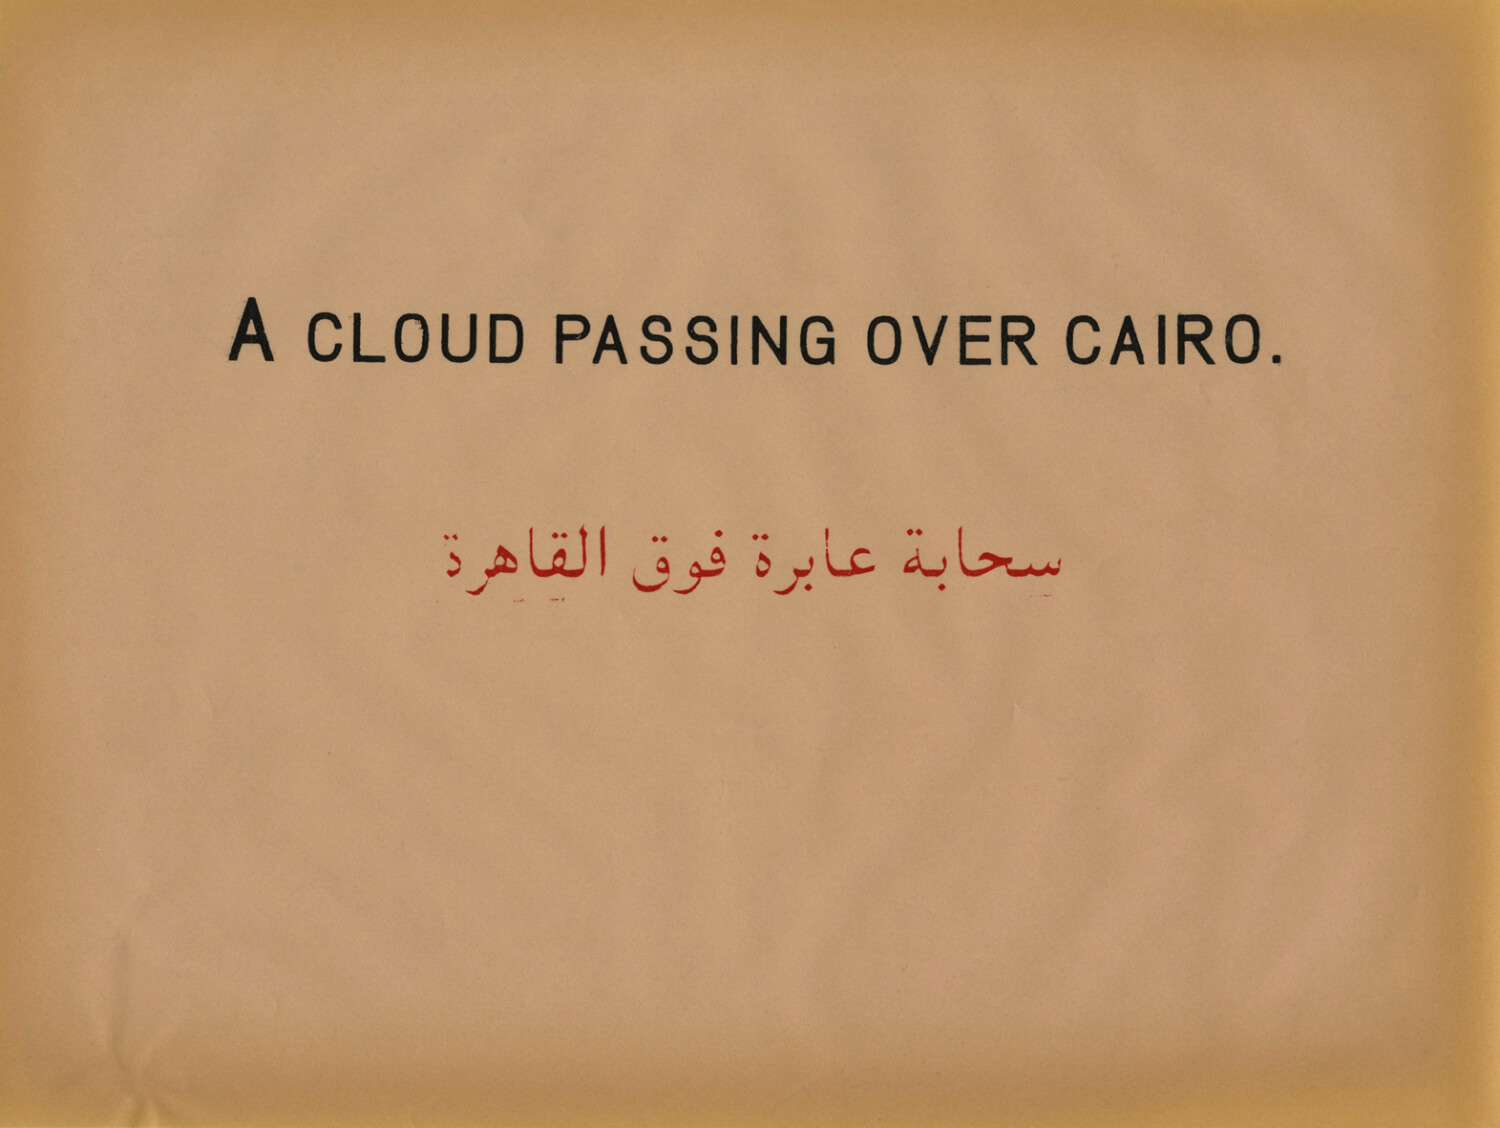 A Cloud Passing Over Cairo, Prestige of Terror, 2010, Work on paper, 22 x 28 cm